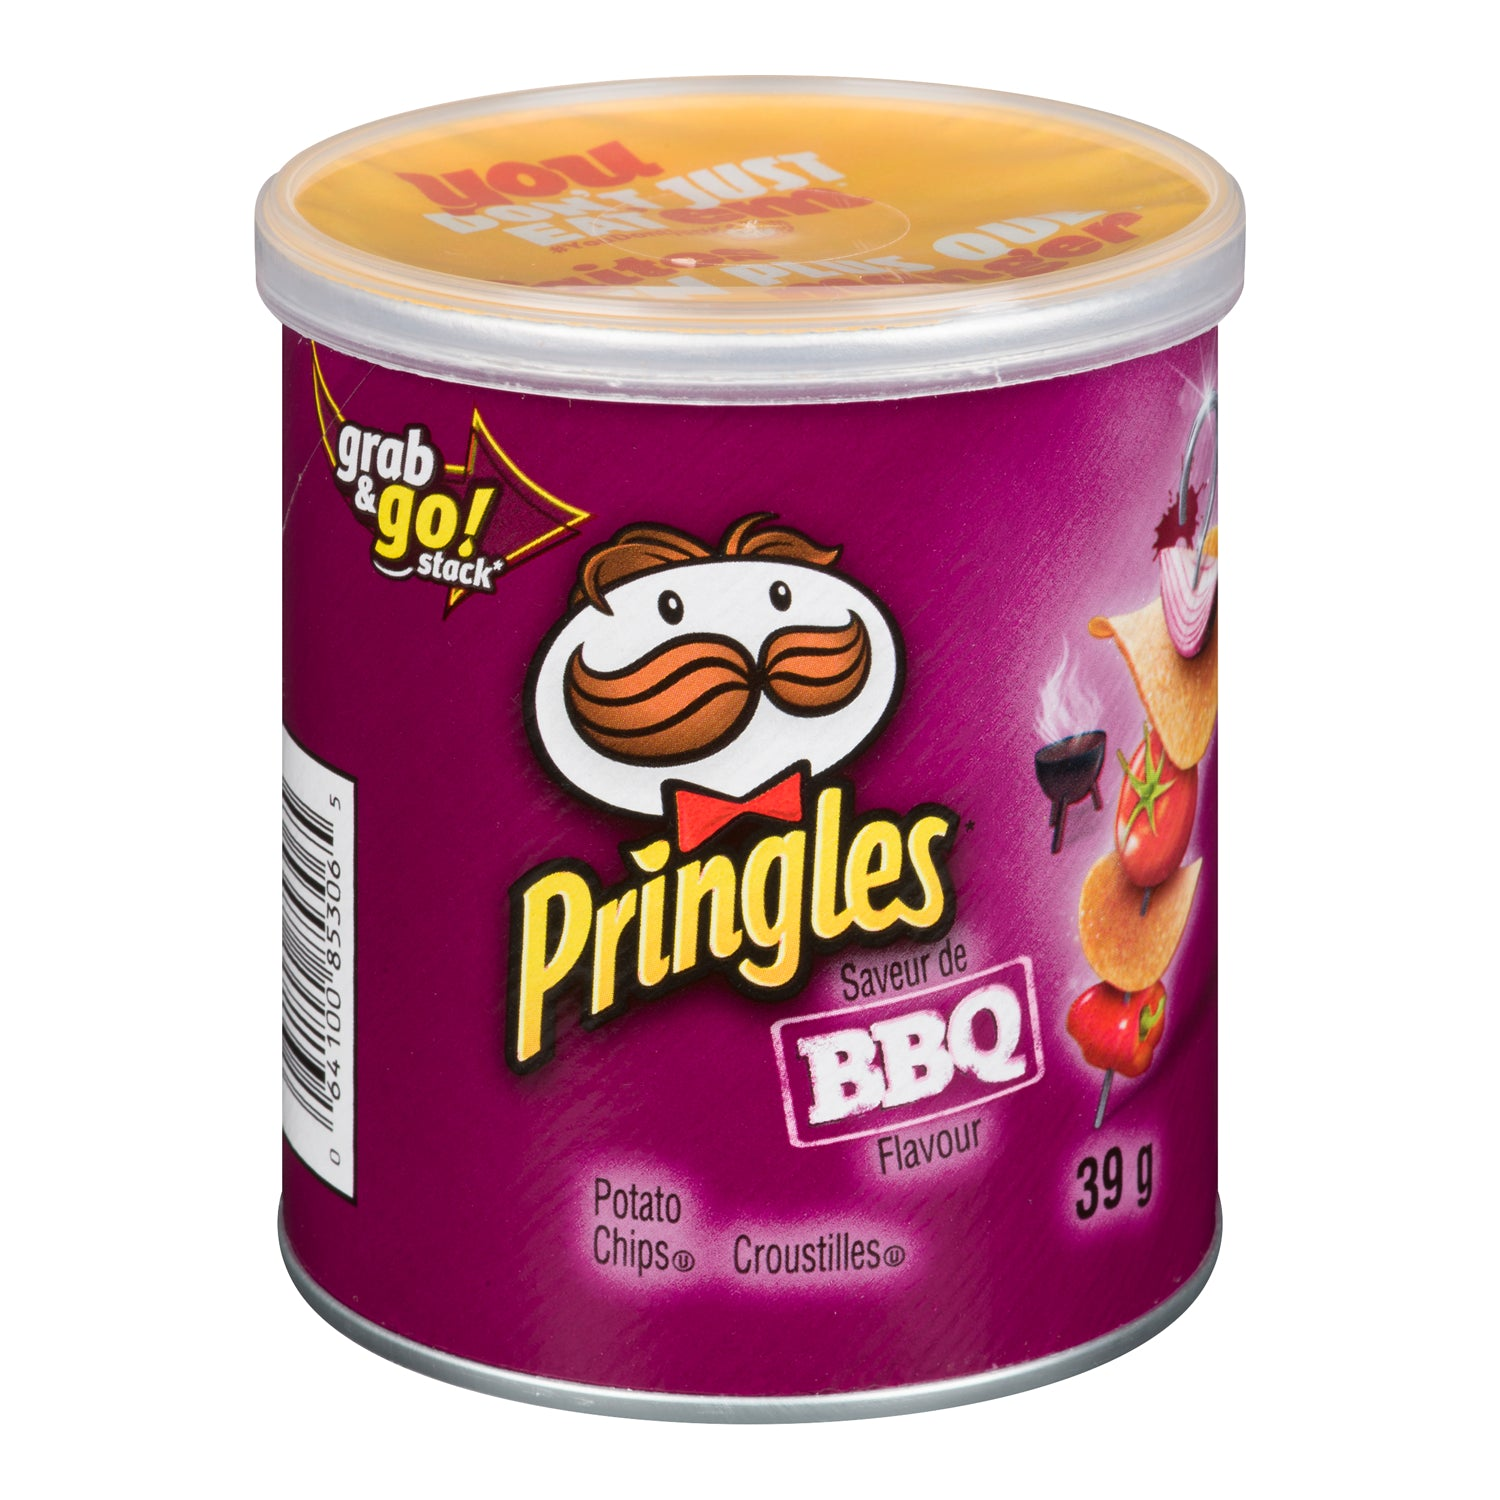 Pringle BBQ Potato Chips 39 g - 12 Pack [$0.83/each]